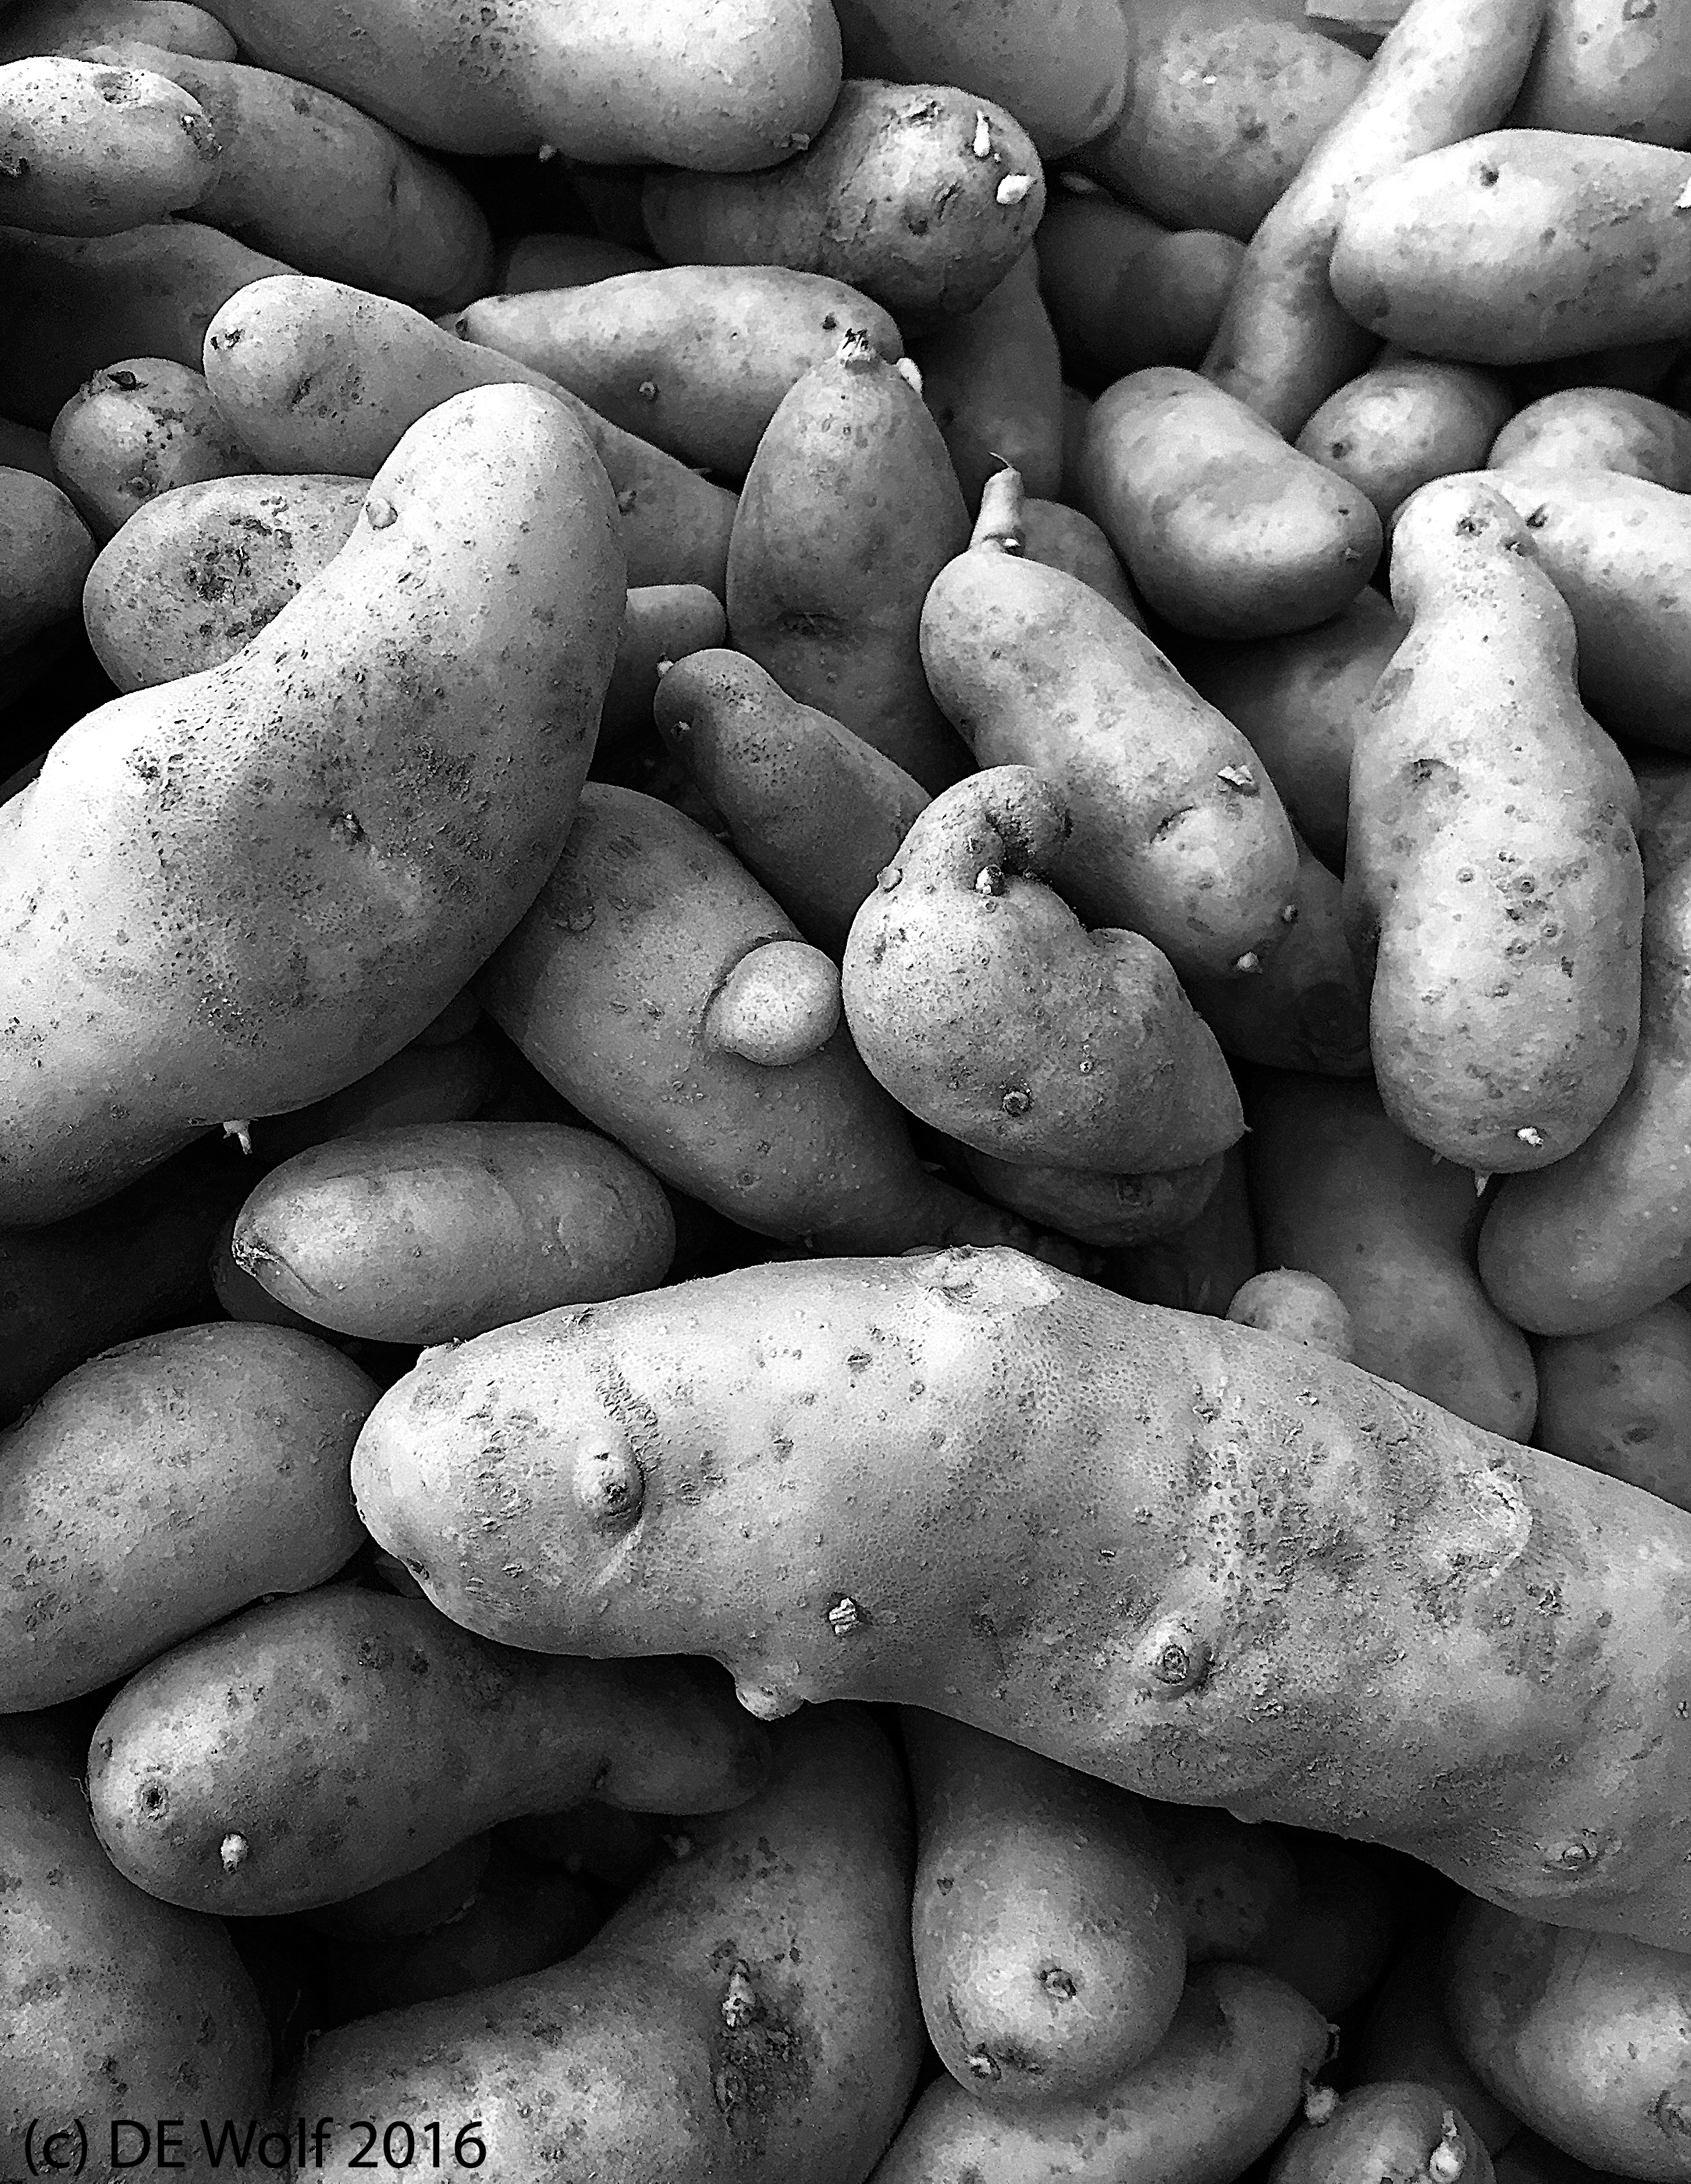 Figures 1 - SPuds. IPhone photograph. (c) DE Wold 2016.